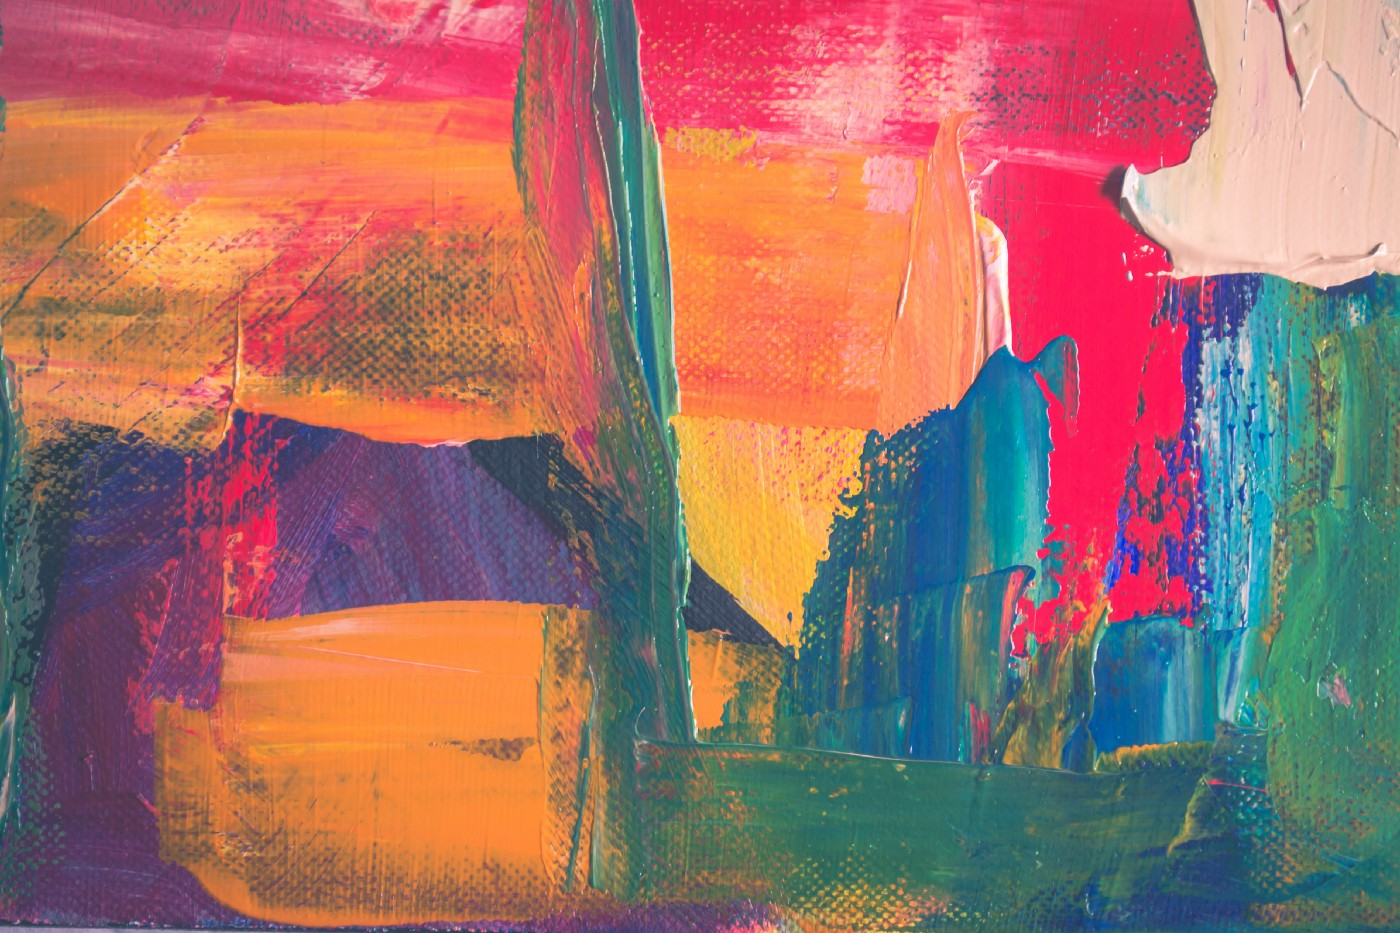 Abstract art painting using green, orange, yellow, blue, red, purple, and coral.